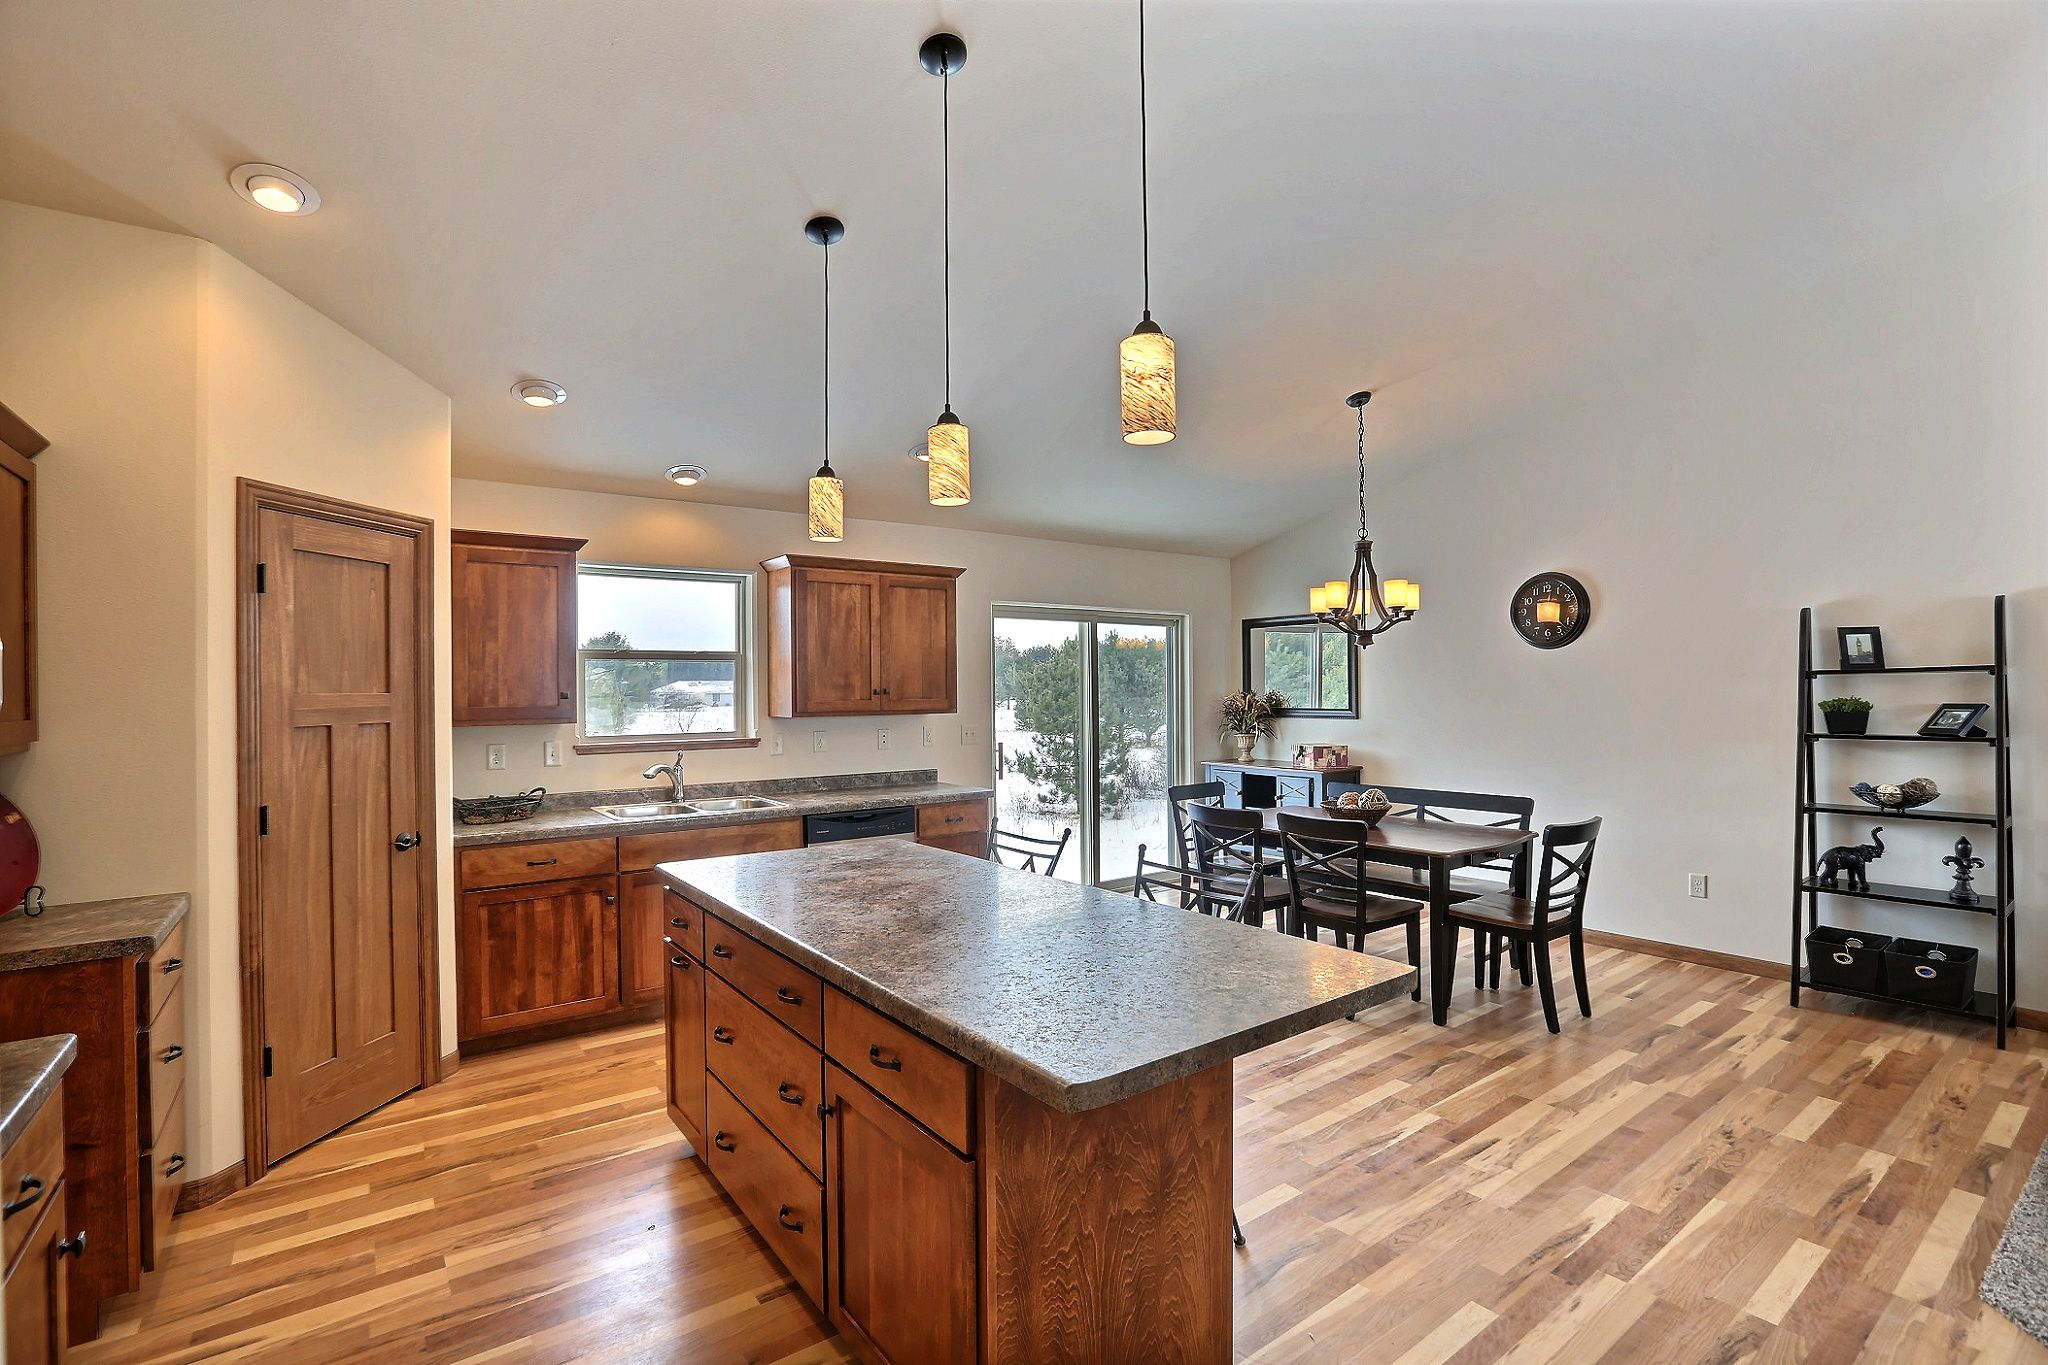 Fc26 Orchid Ii Floor Plan Pionite Louise Countertops Cf 116 Heritage Stained Cabinets Wi Blonde Laminate Flooring Staining Cabinets Maple Laminate Flooring